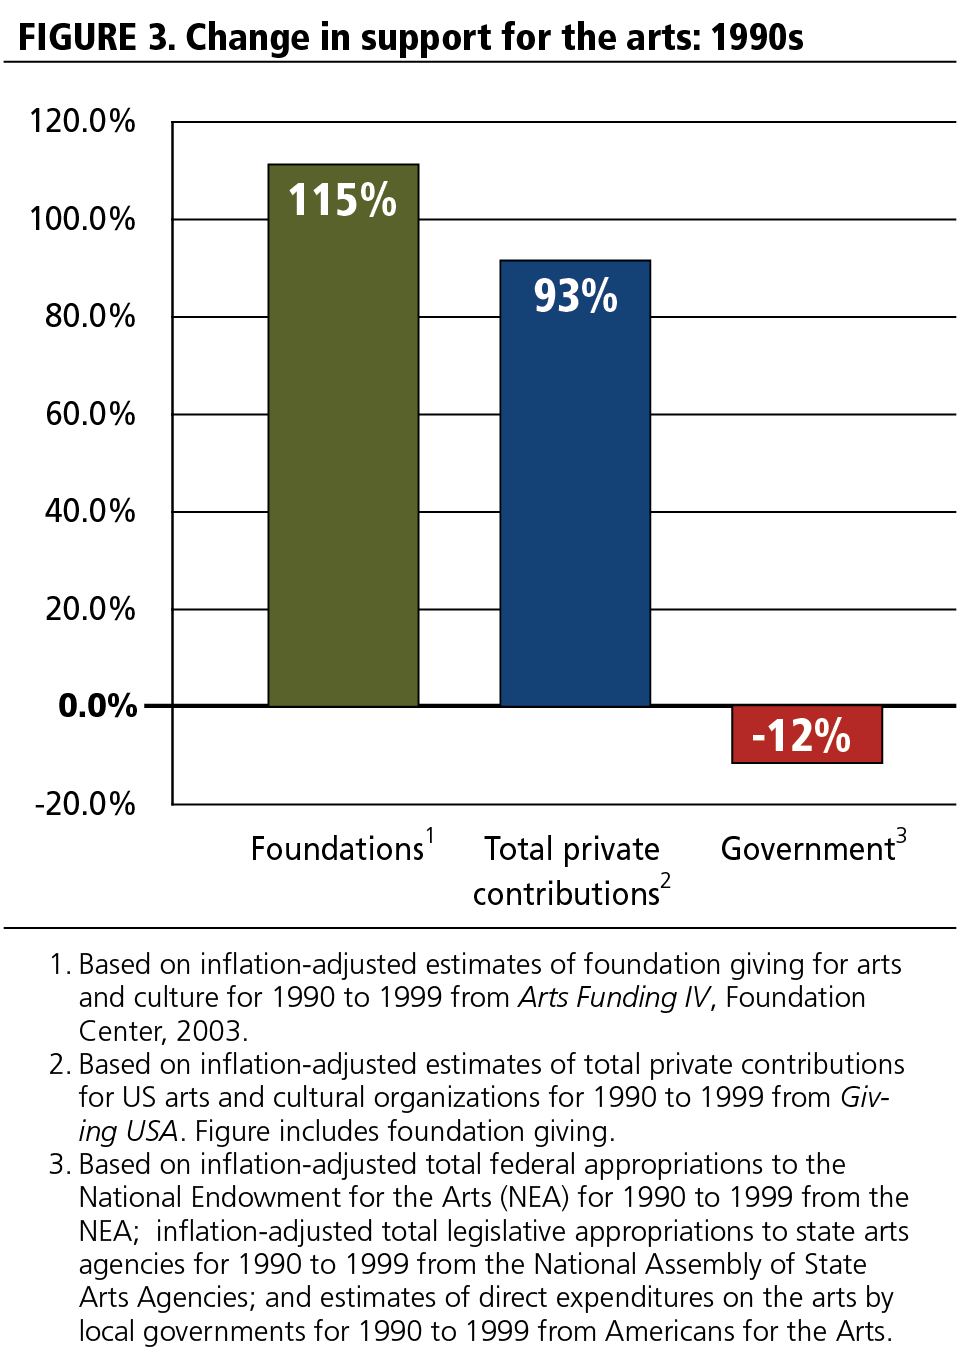 FIGURE 3 Change in support for the arts: 1990s